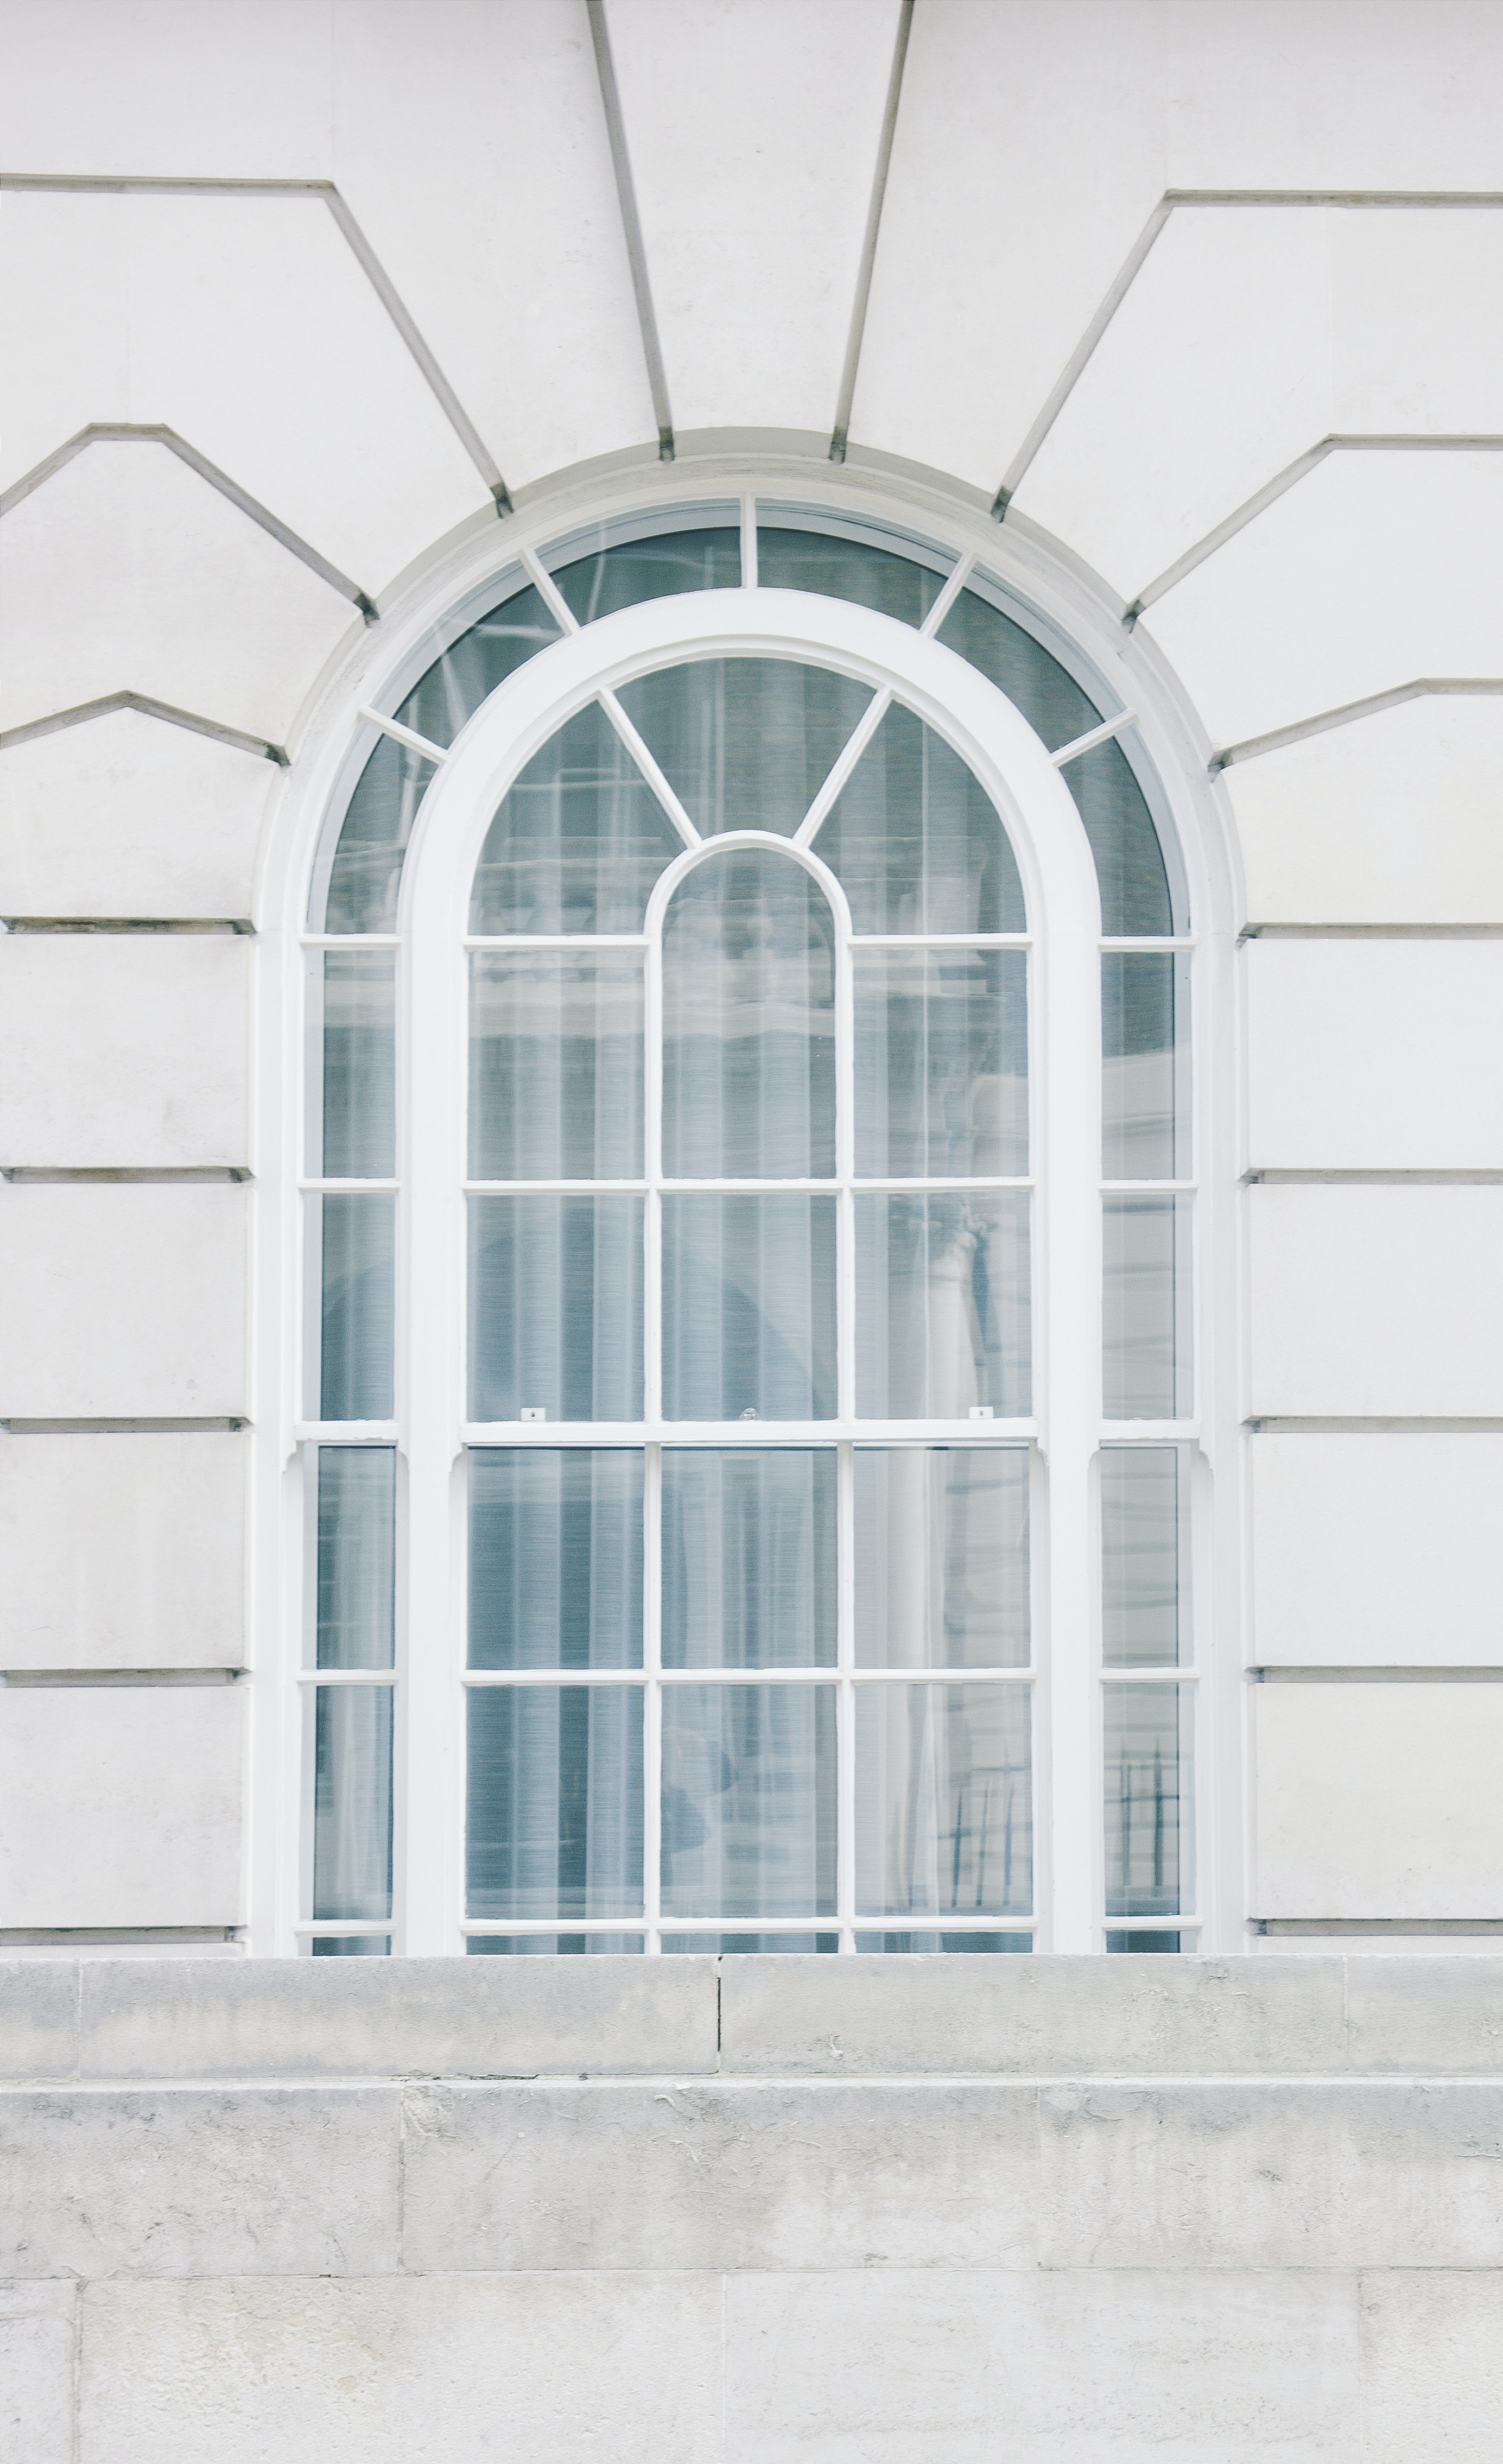 A white arched window in a building in London